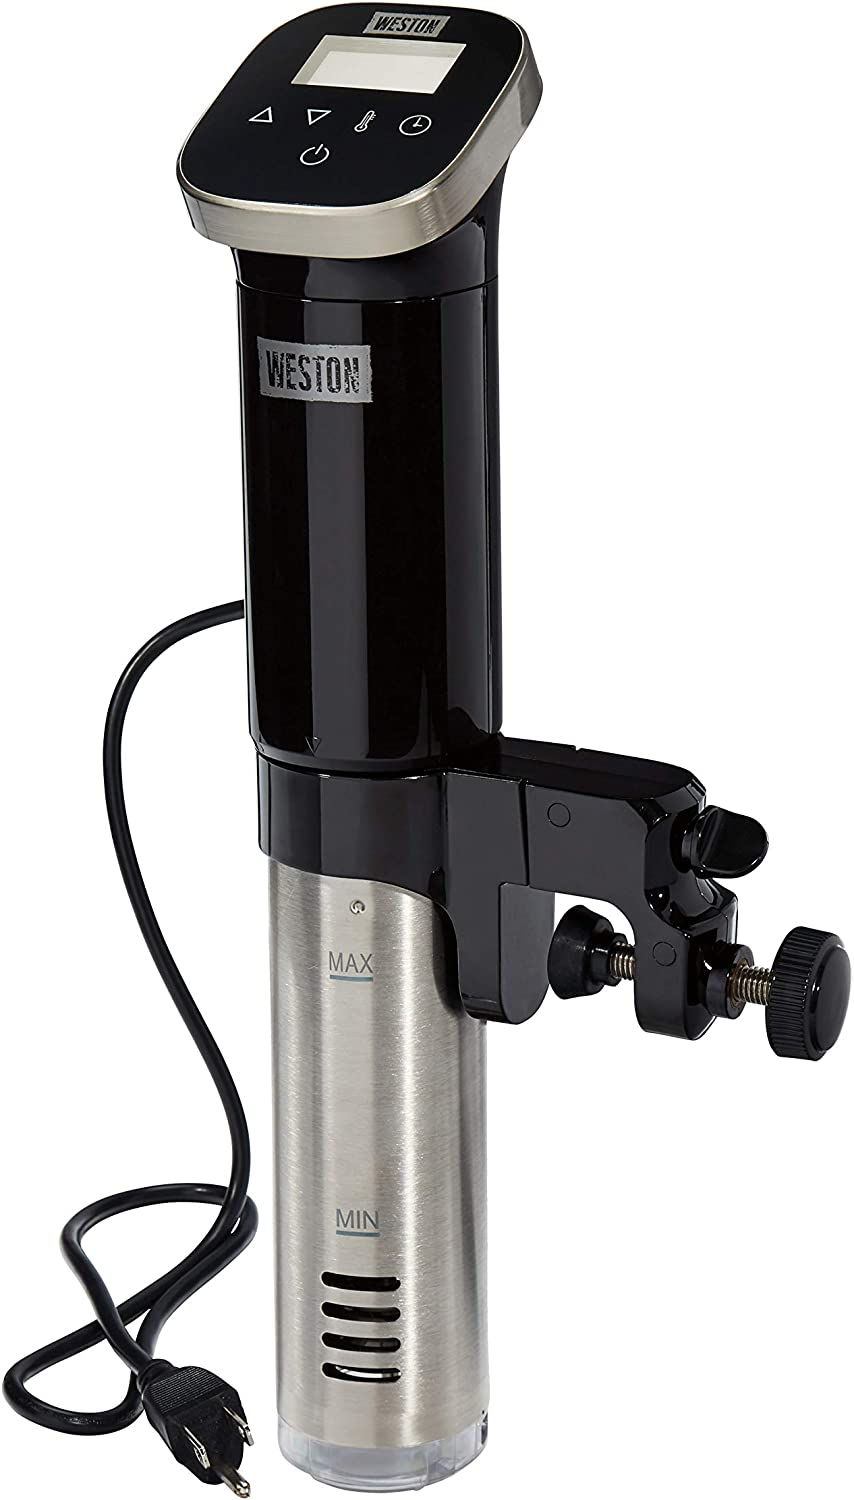 Weston Sous Vide Immersion Circulator with Digital Controls and Display, 800W, Black (36200)